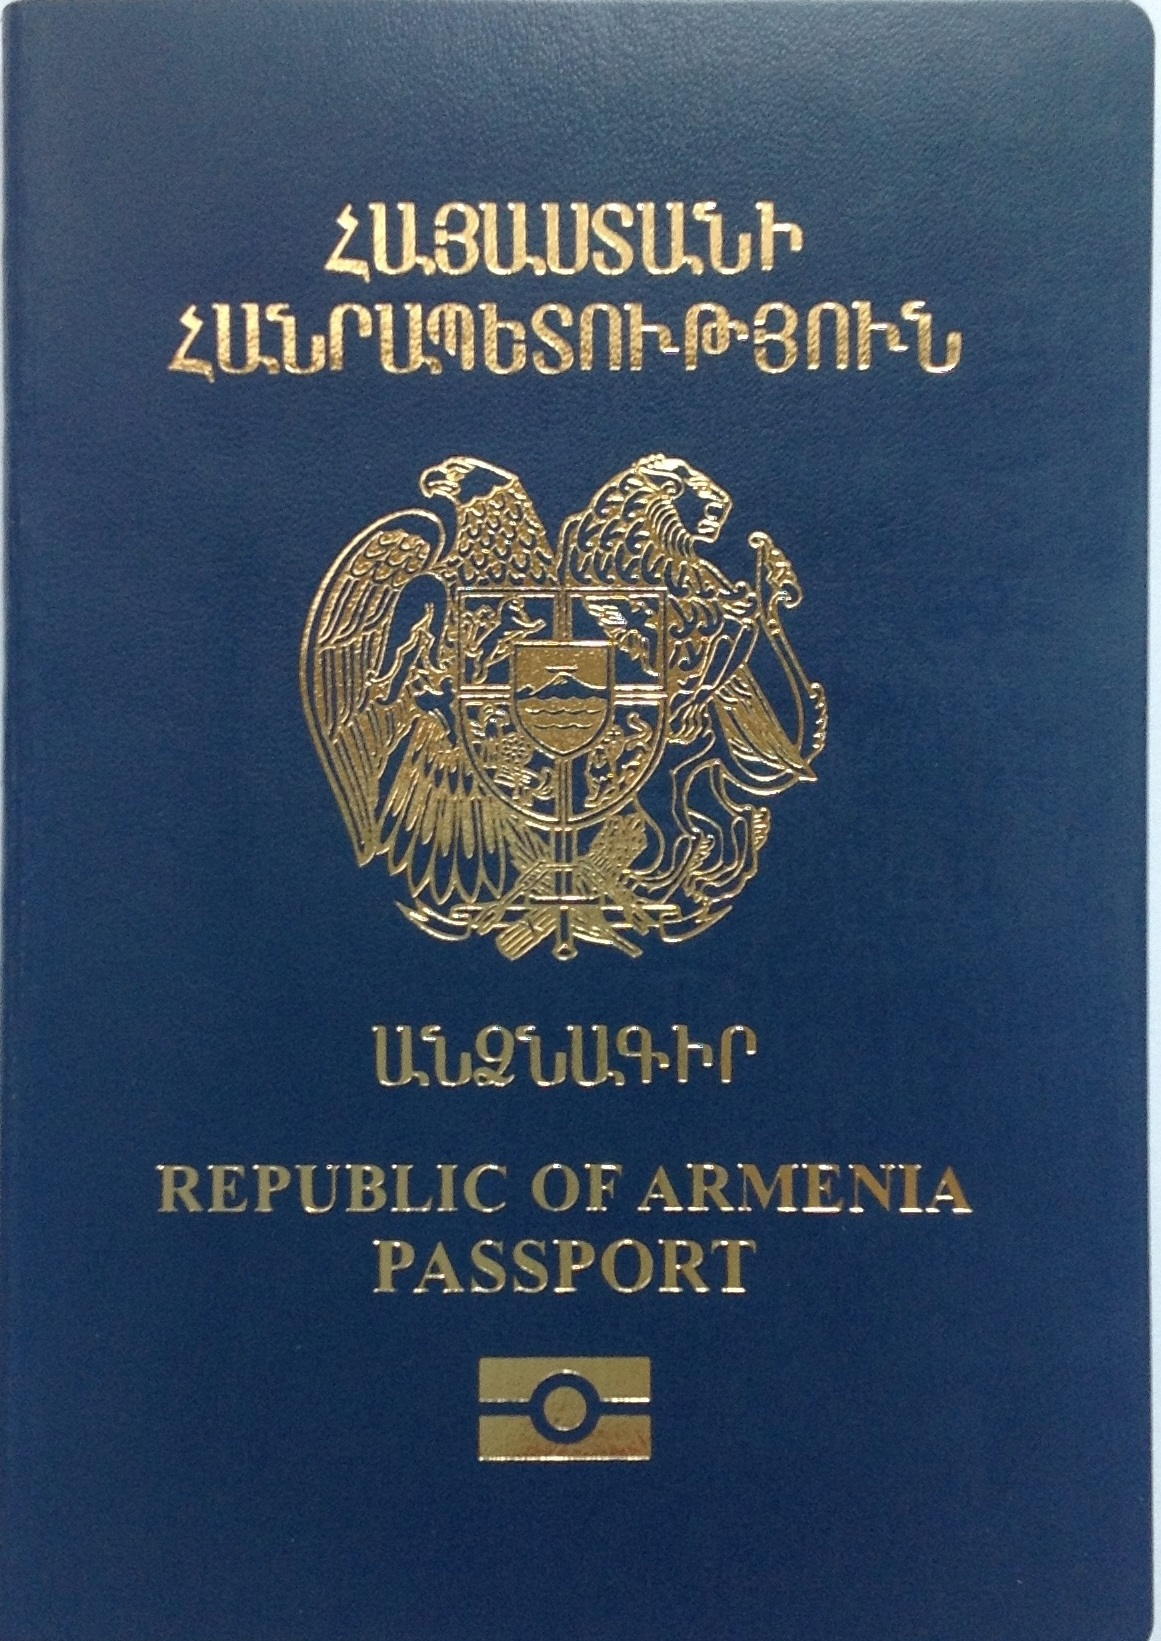 Visa Requirements For Armenian Citizens Wikipedia